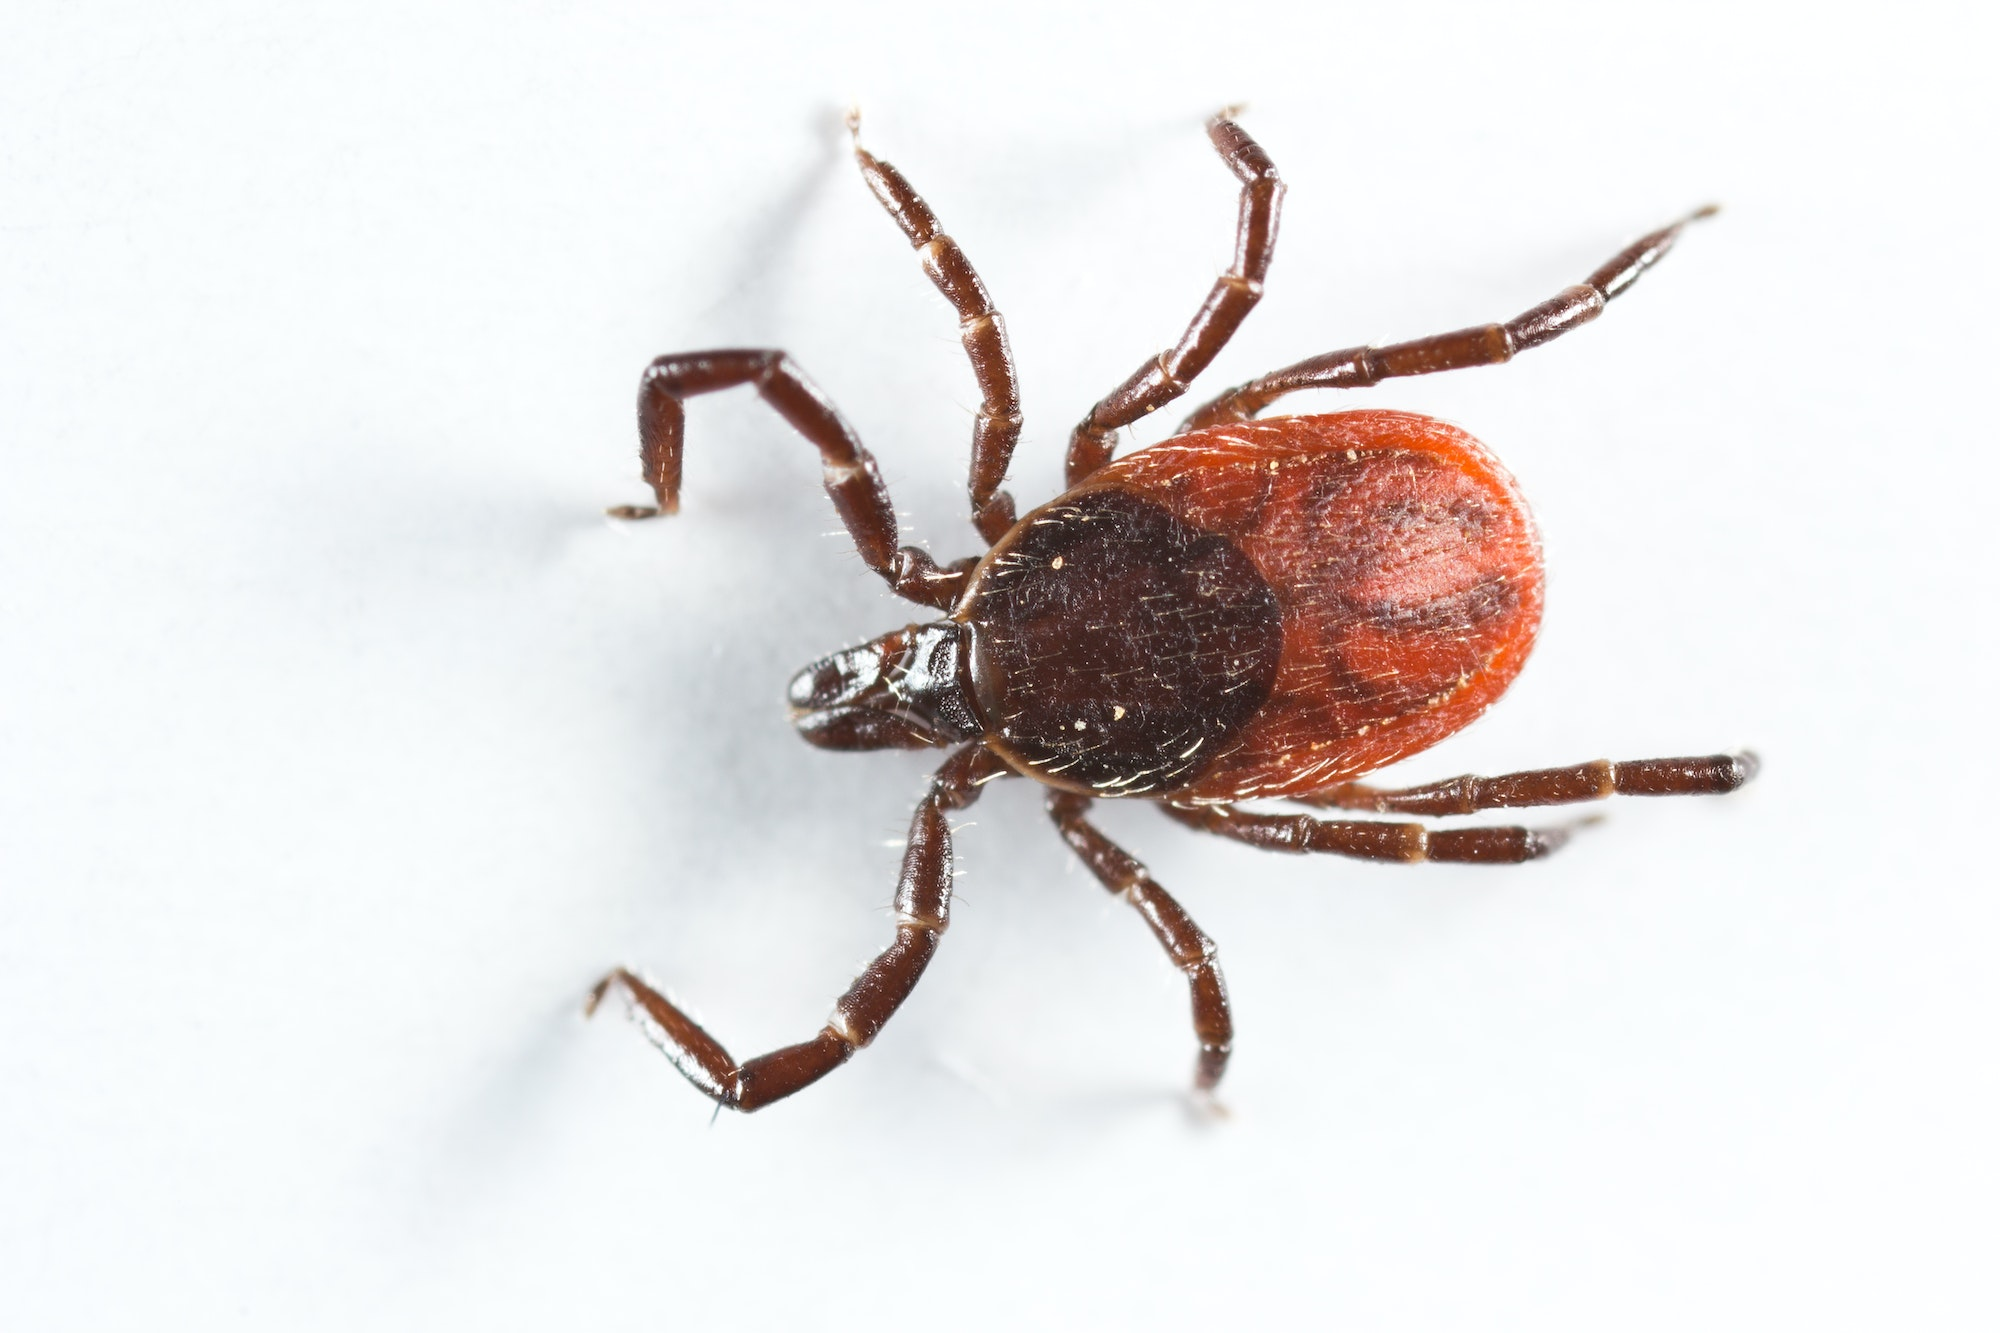 A brown and black colored tick, with a round body, 8 long legs, and a mouthpart extending from the body